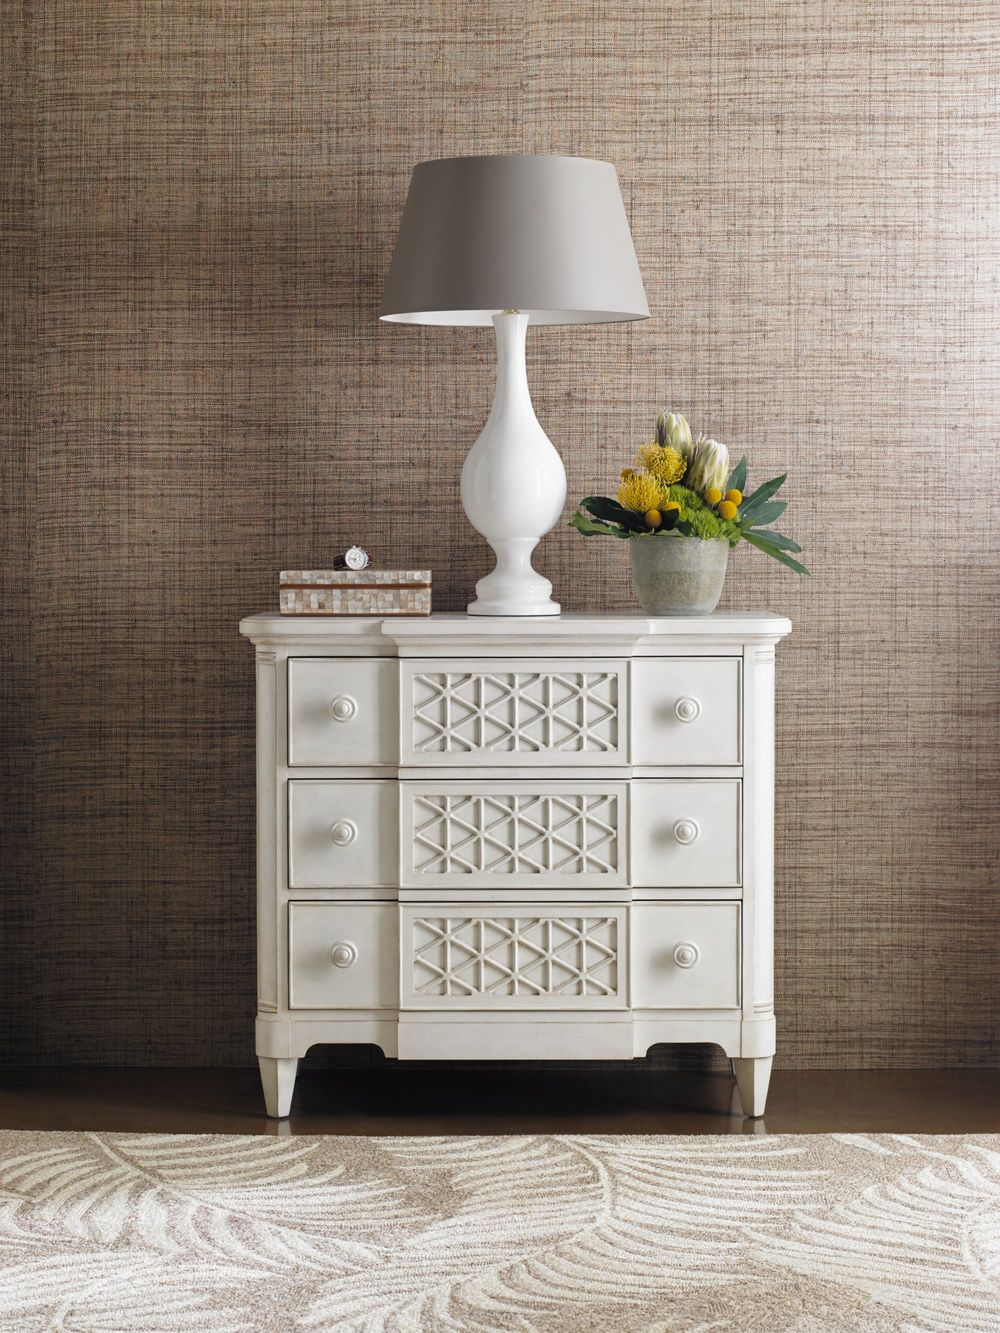 Stanley Furniture - Bachelor's Chest